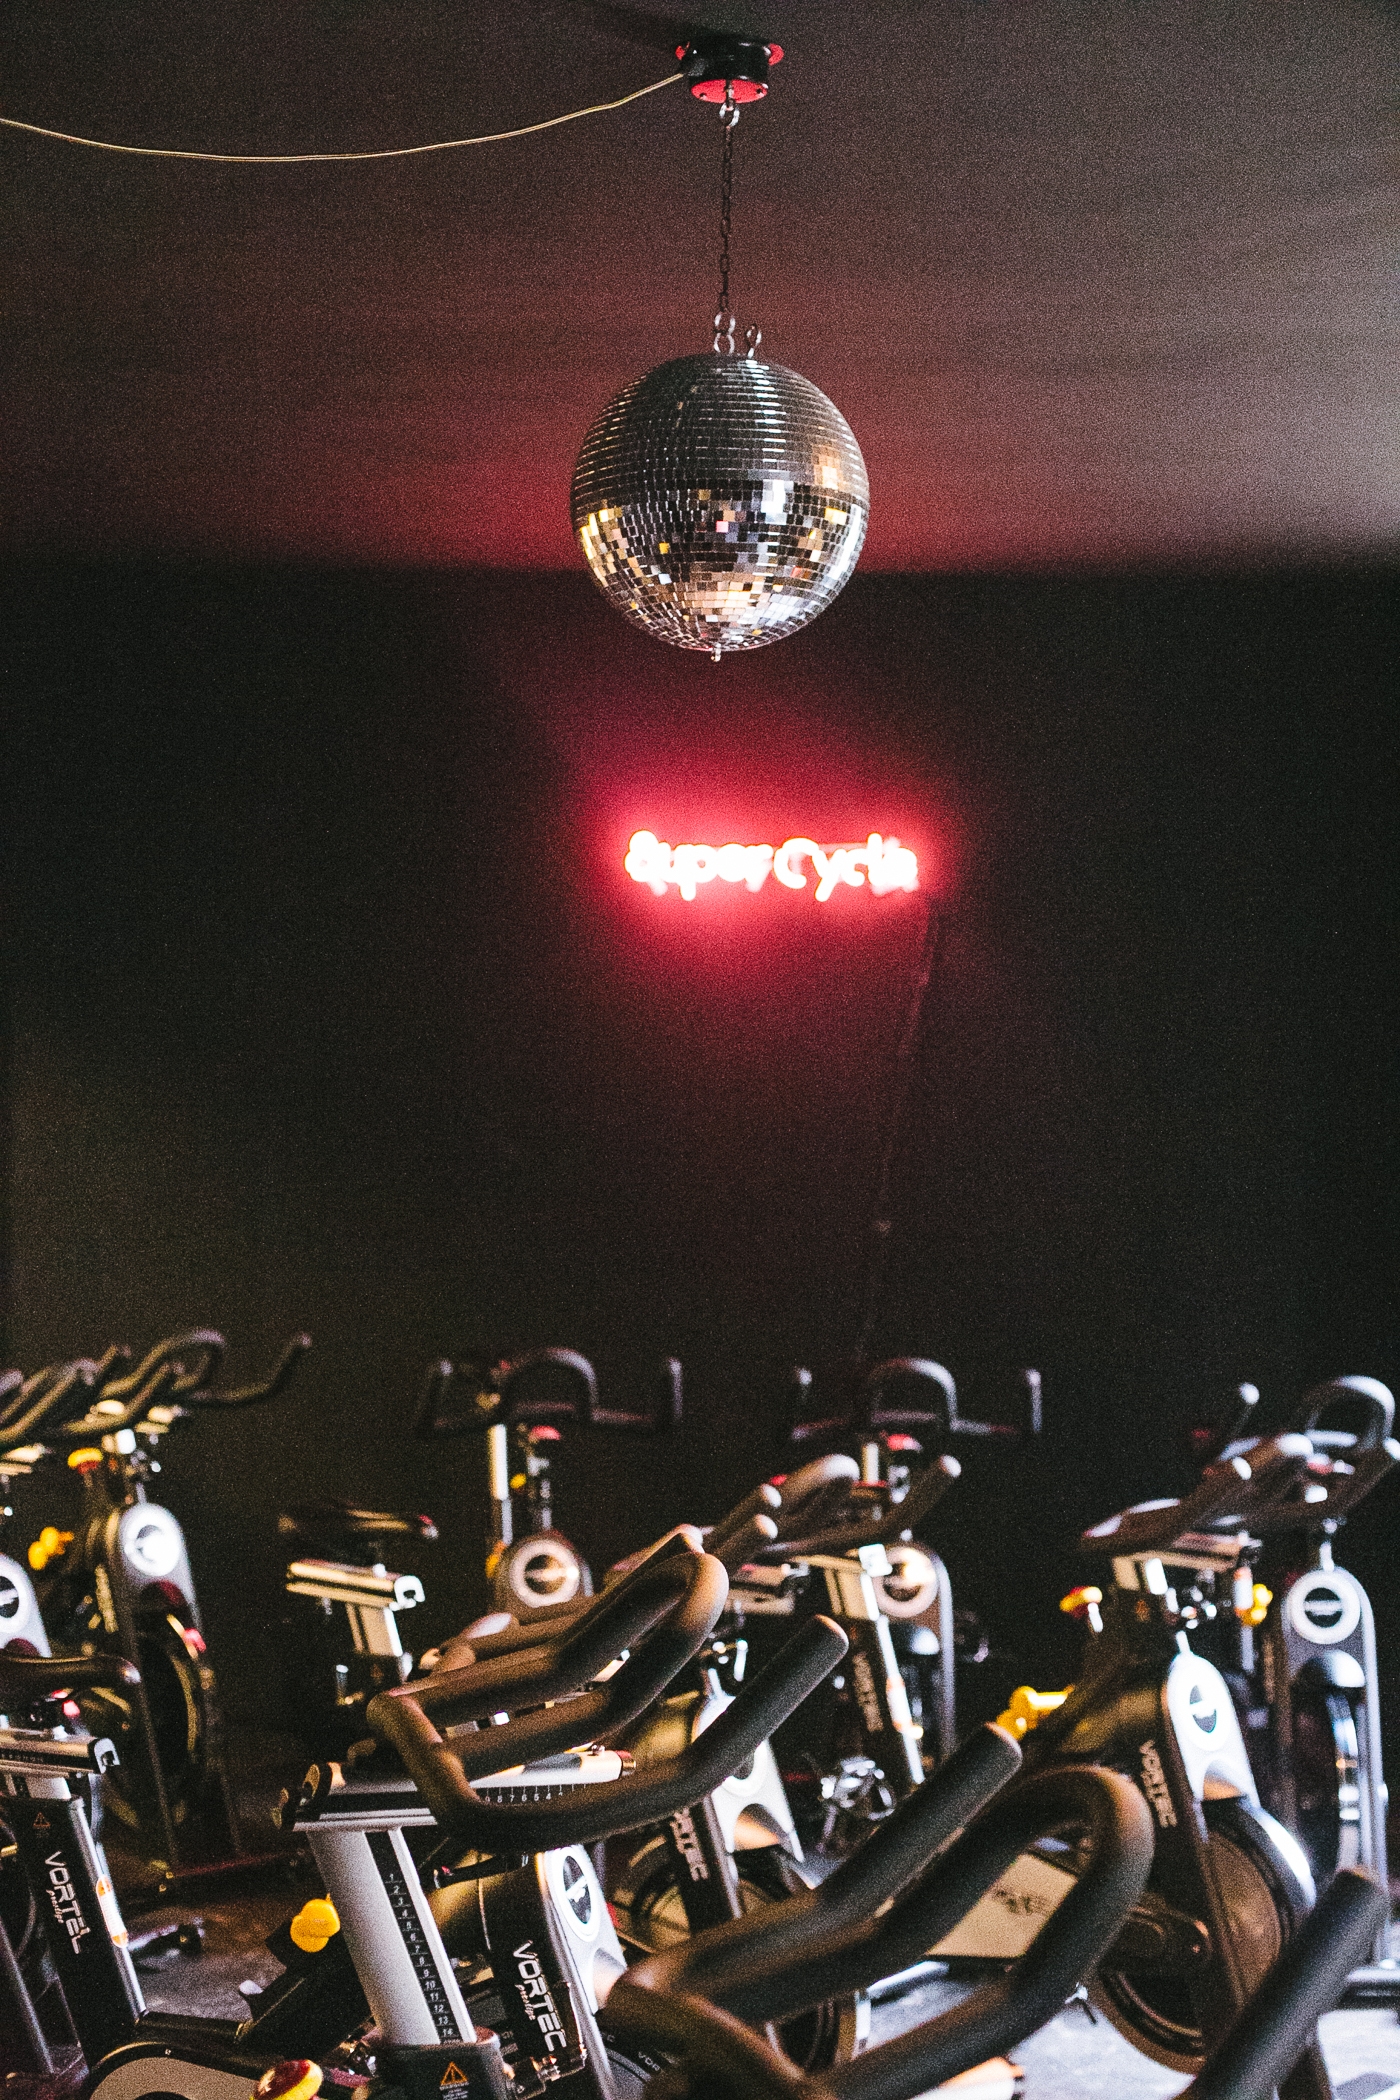 SuperCycle Spinning Class Vienna 1070 - Love Daily Dose